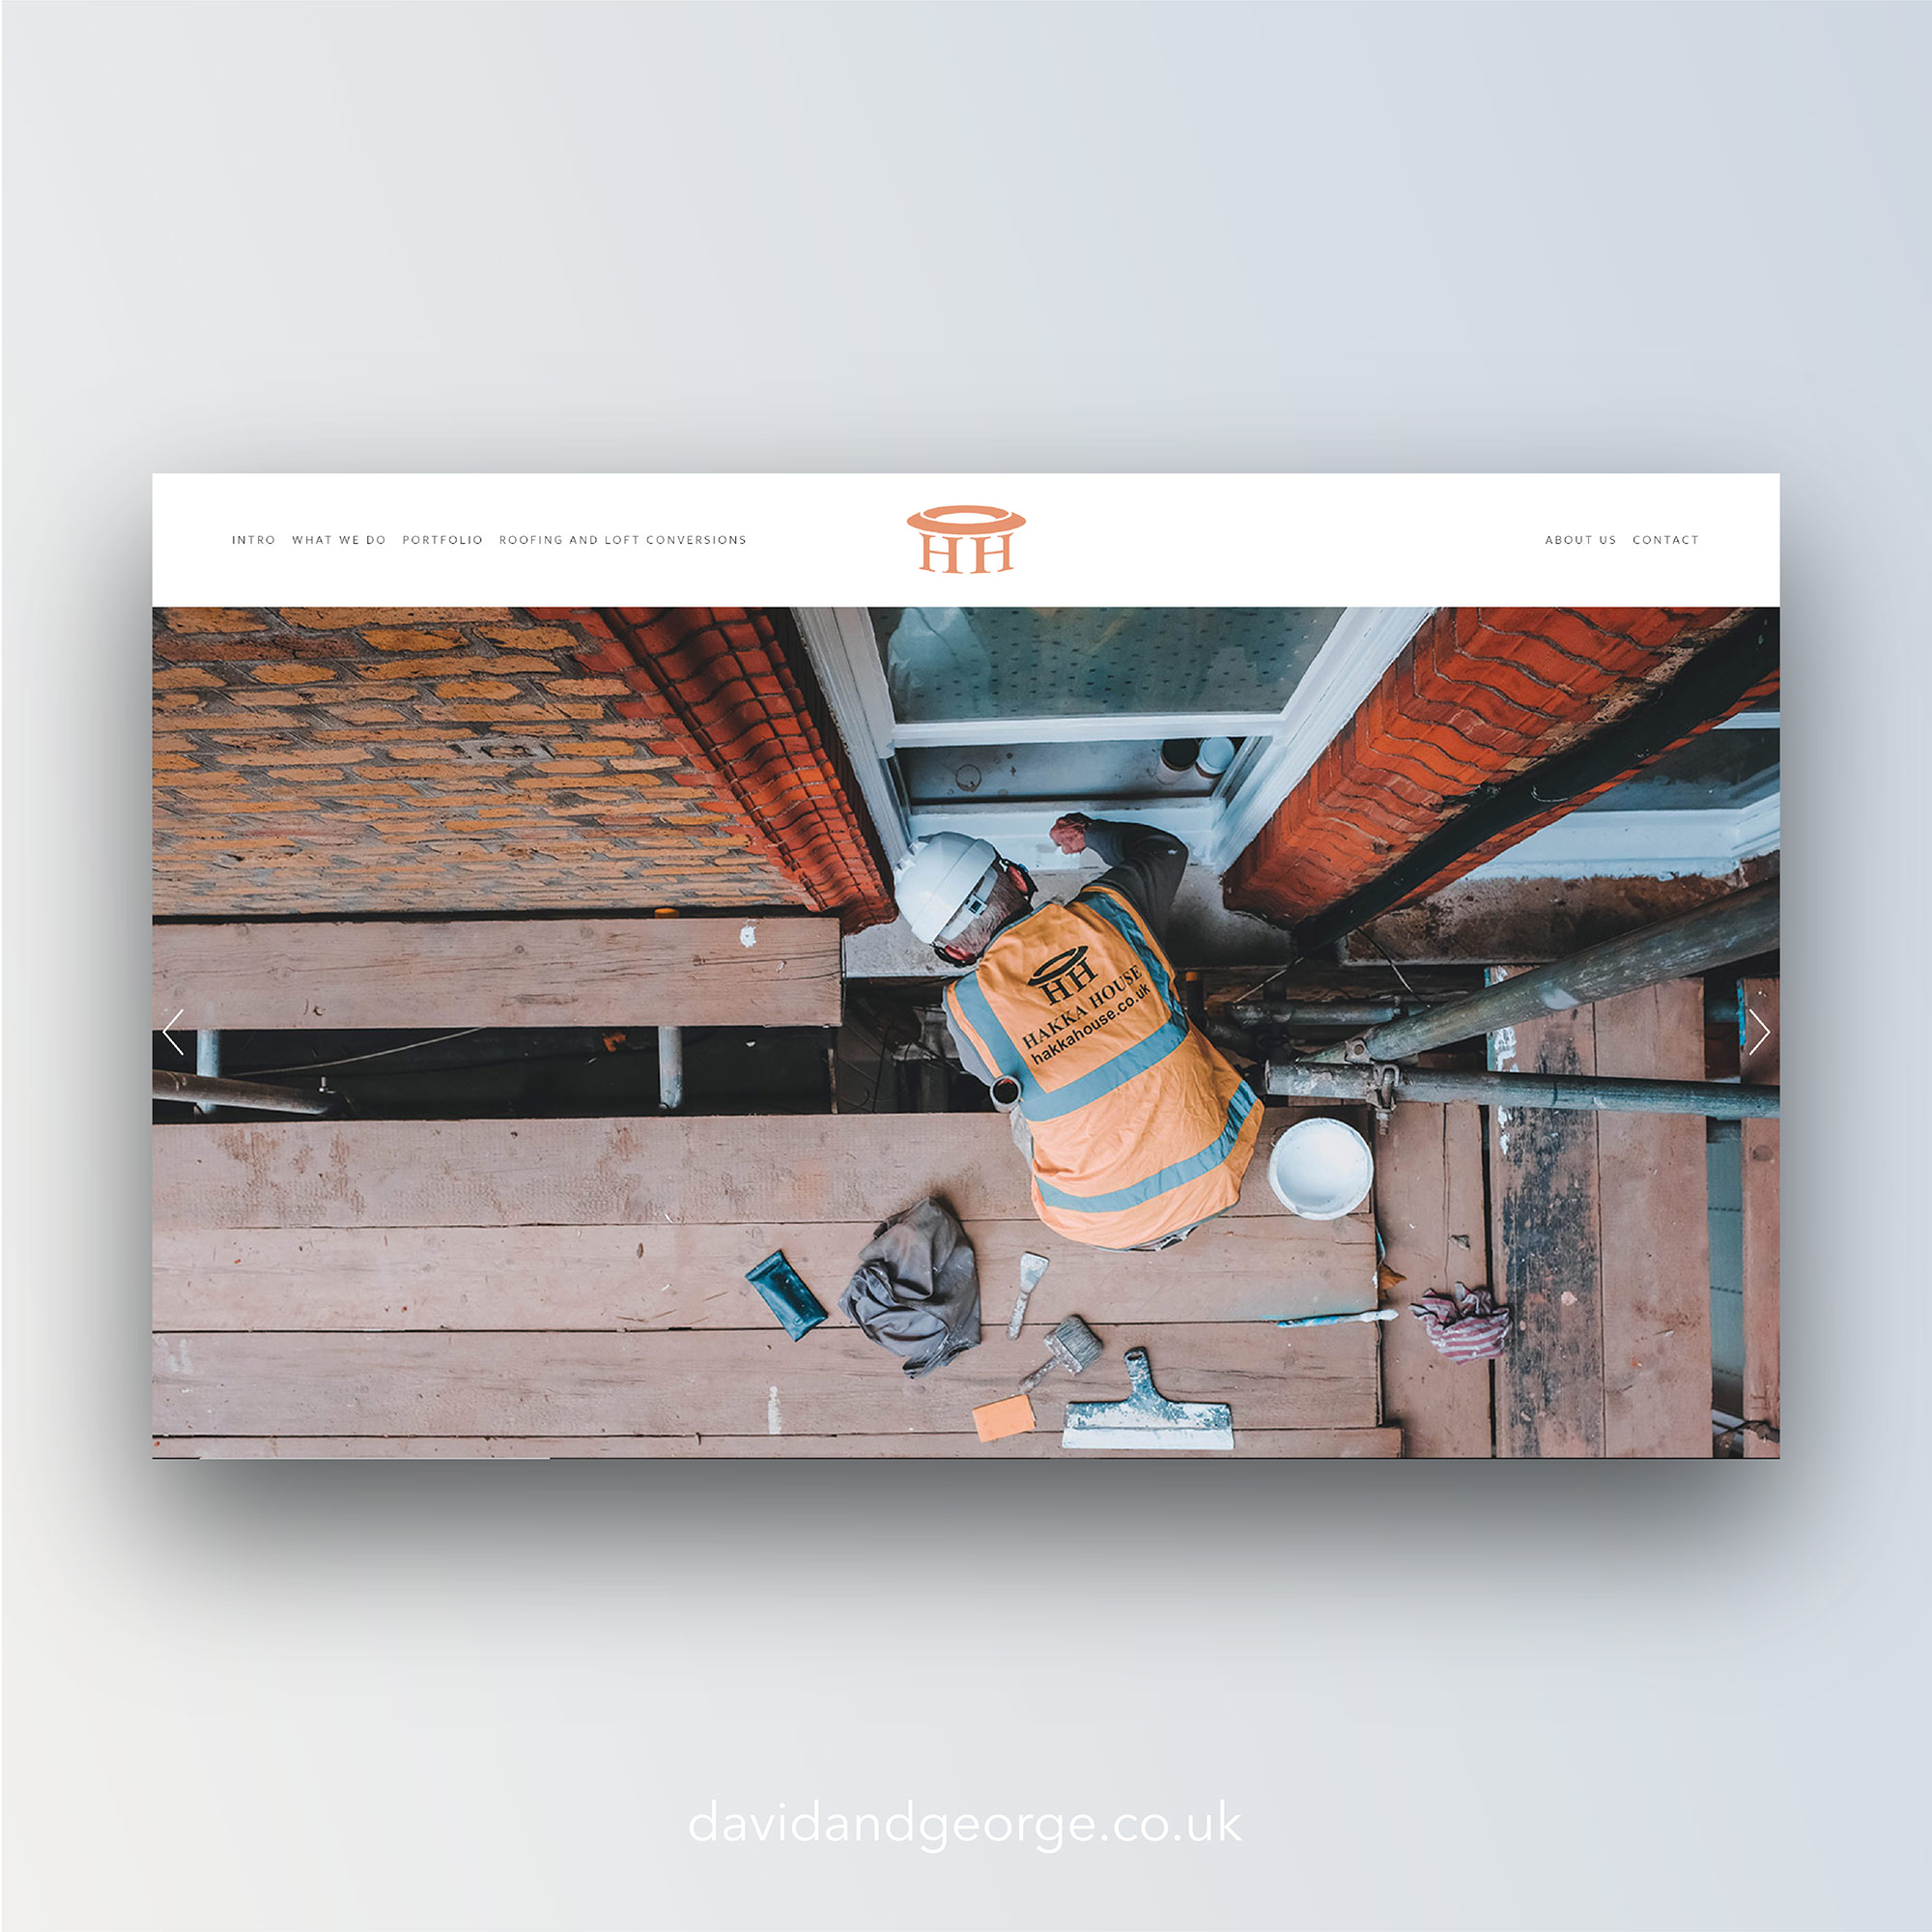 squarespace-website-design-london-edinburgh-uk-david-and-george-hakka-house.jpg